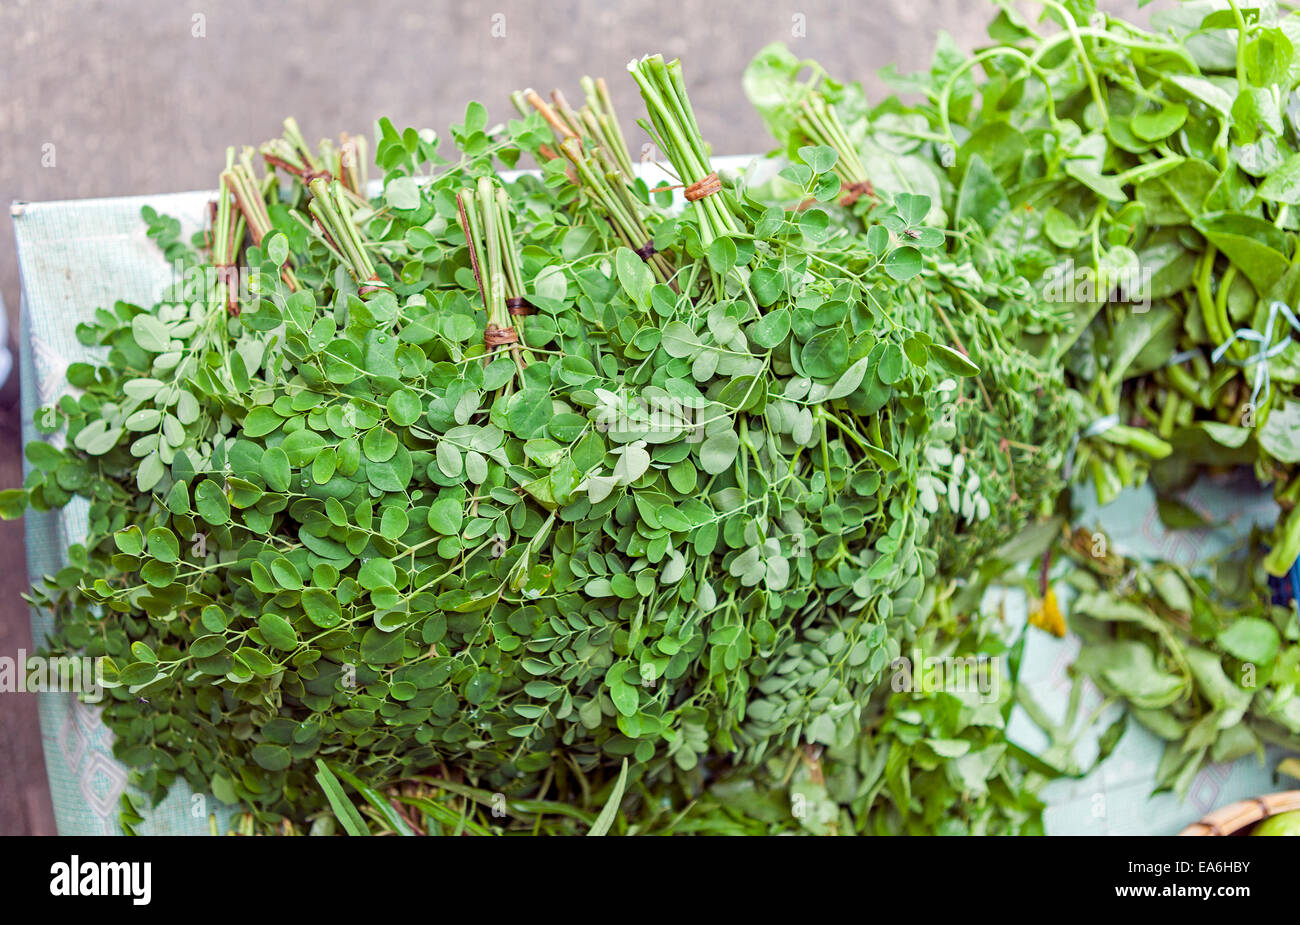 Bunches of Malunggay leaves, Moringa Oleifera for sale at a market in the Philippines. Stock Photo